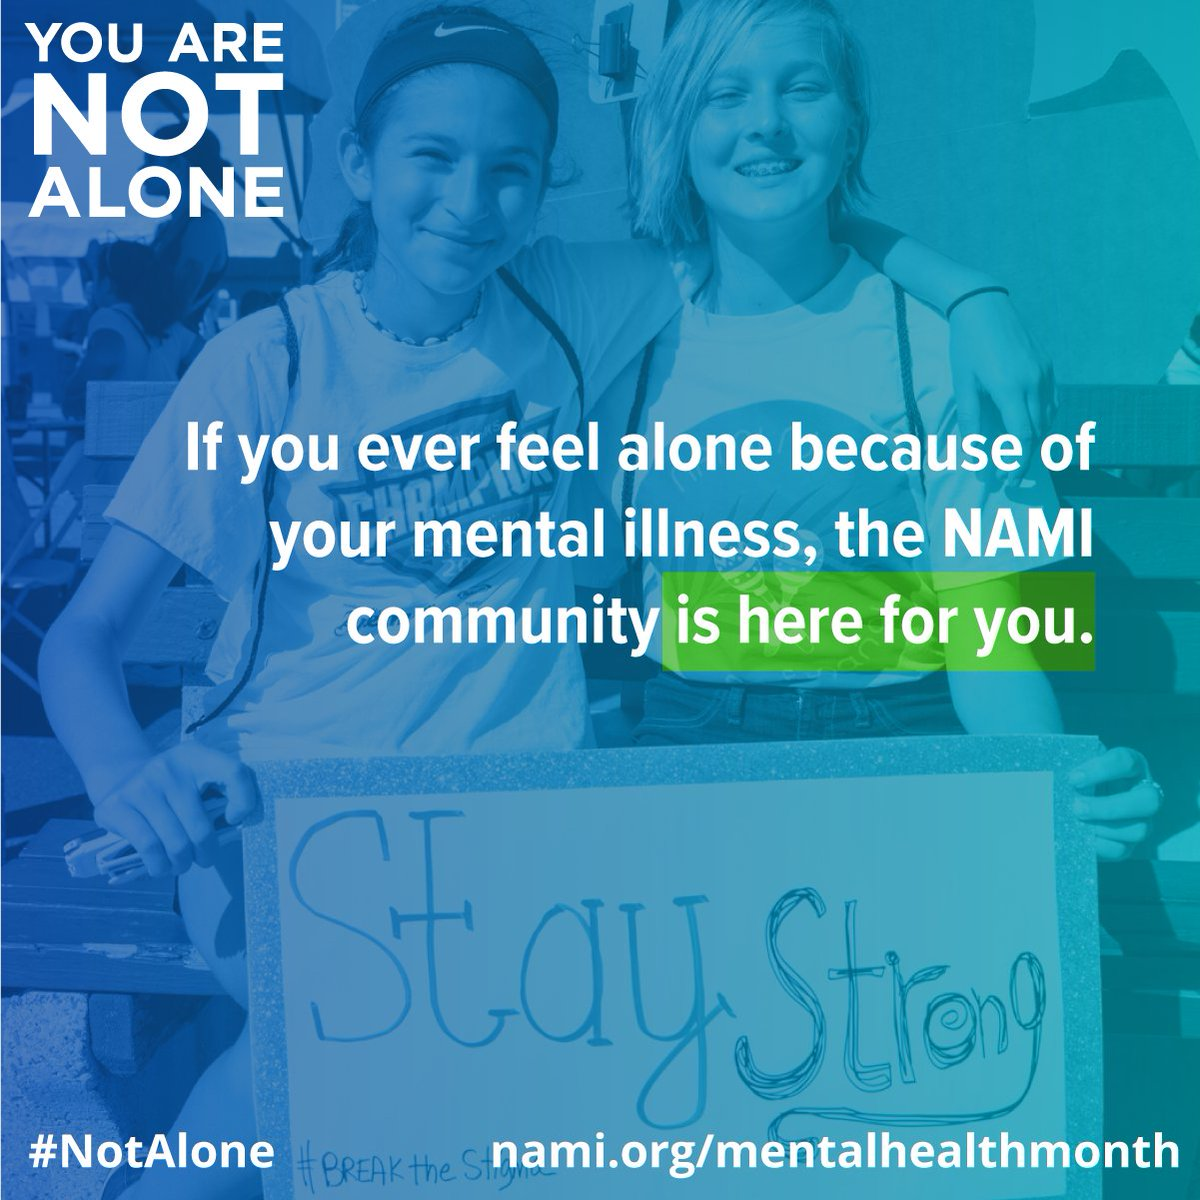 It may almost be the end of #MentalHealthMonth, but that doesn't mean we should stop spreading awareness. NAMI provides help and resources every day of the year. https://t.co/kjd9CKa7Gy